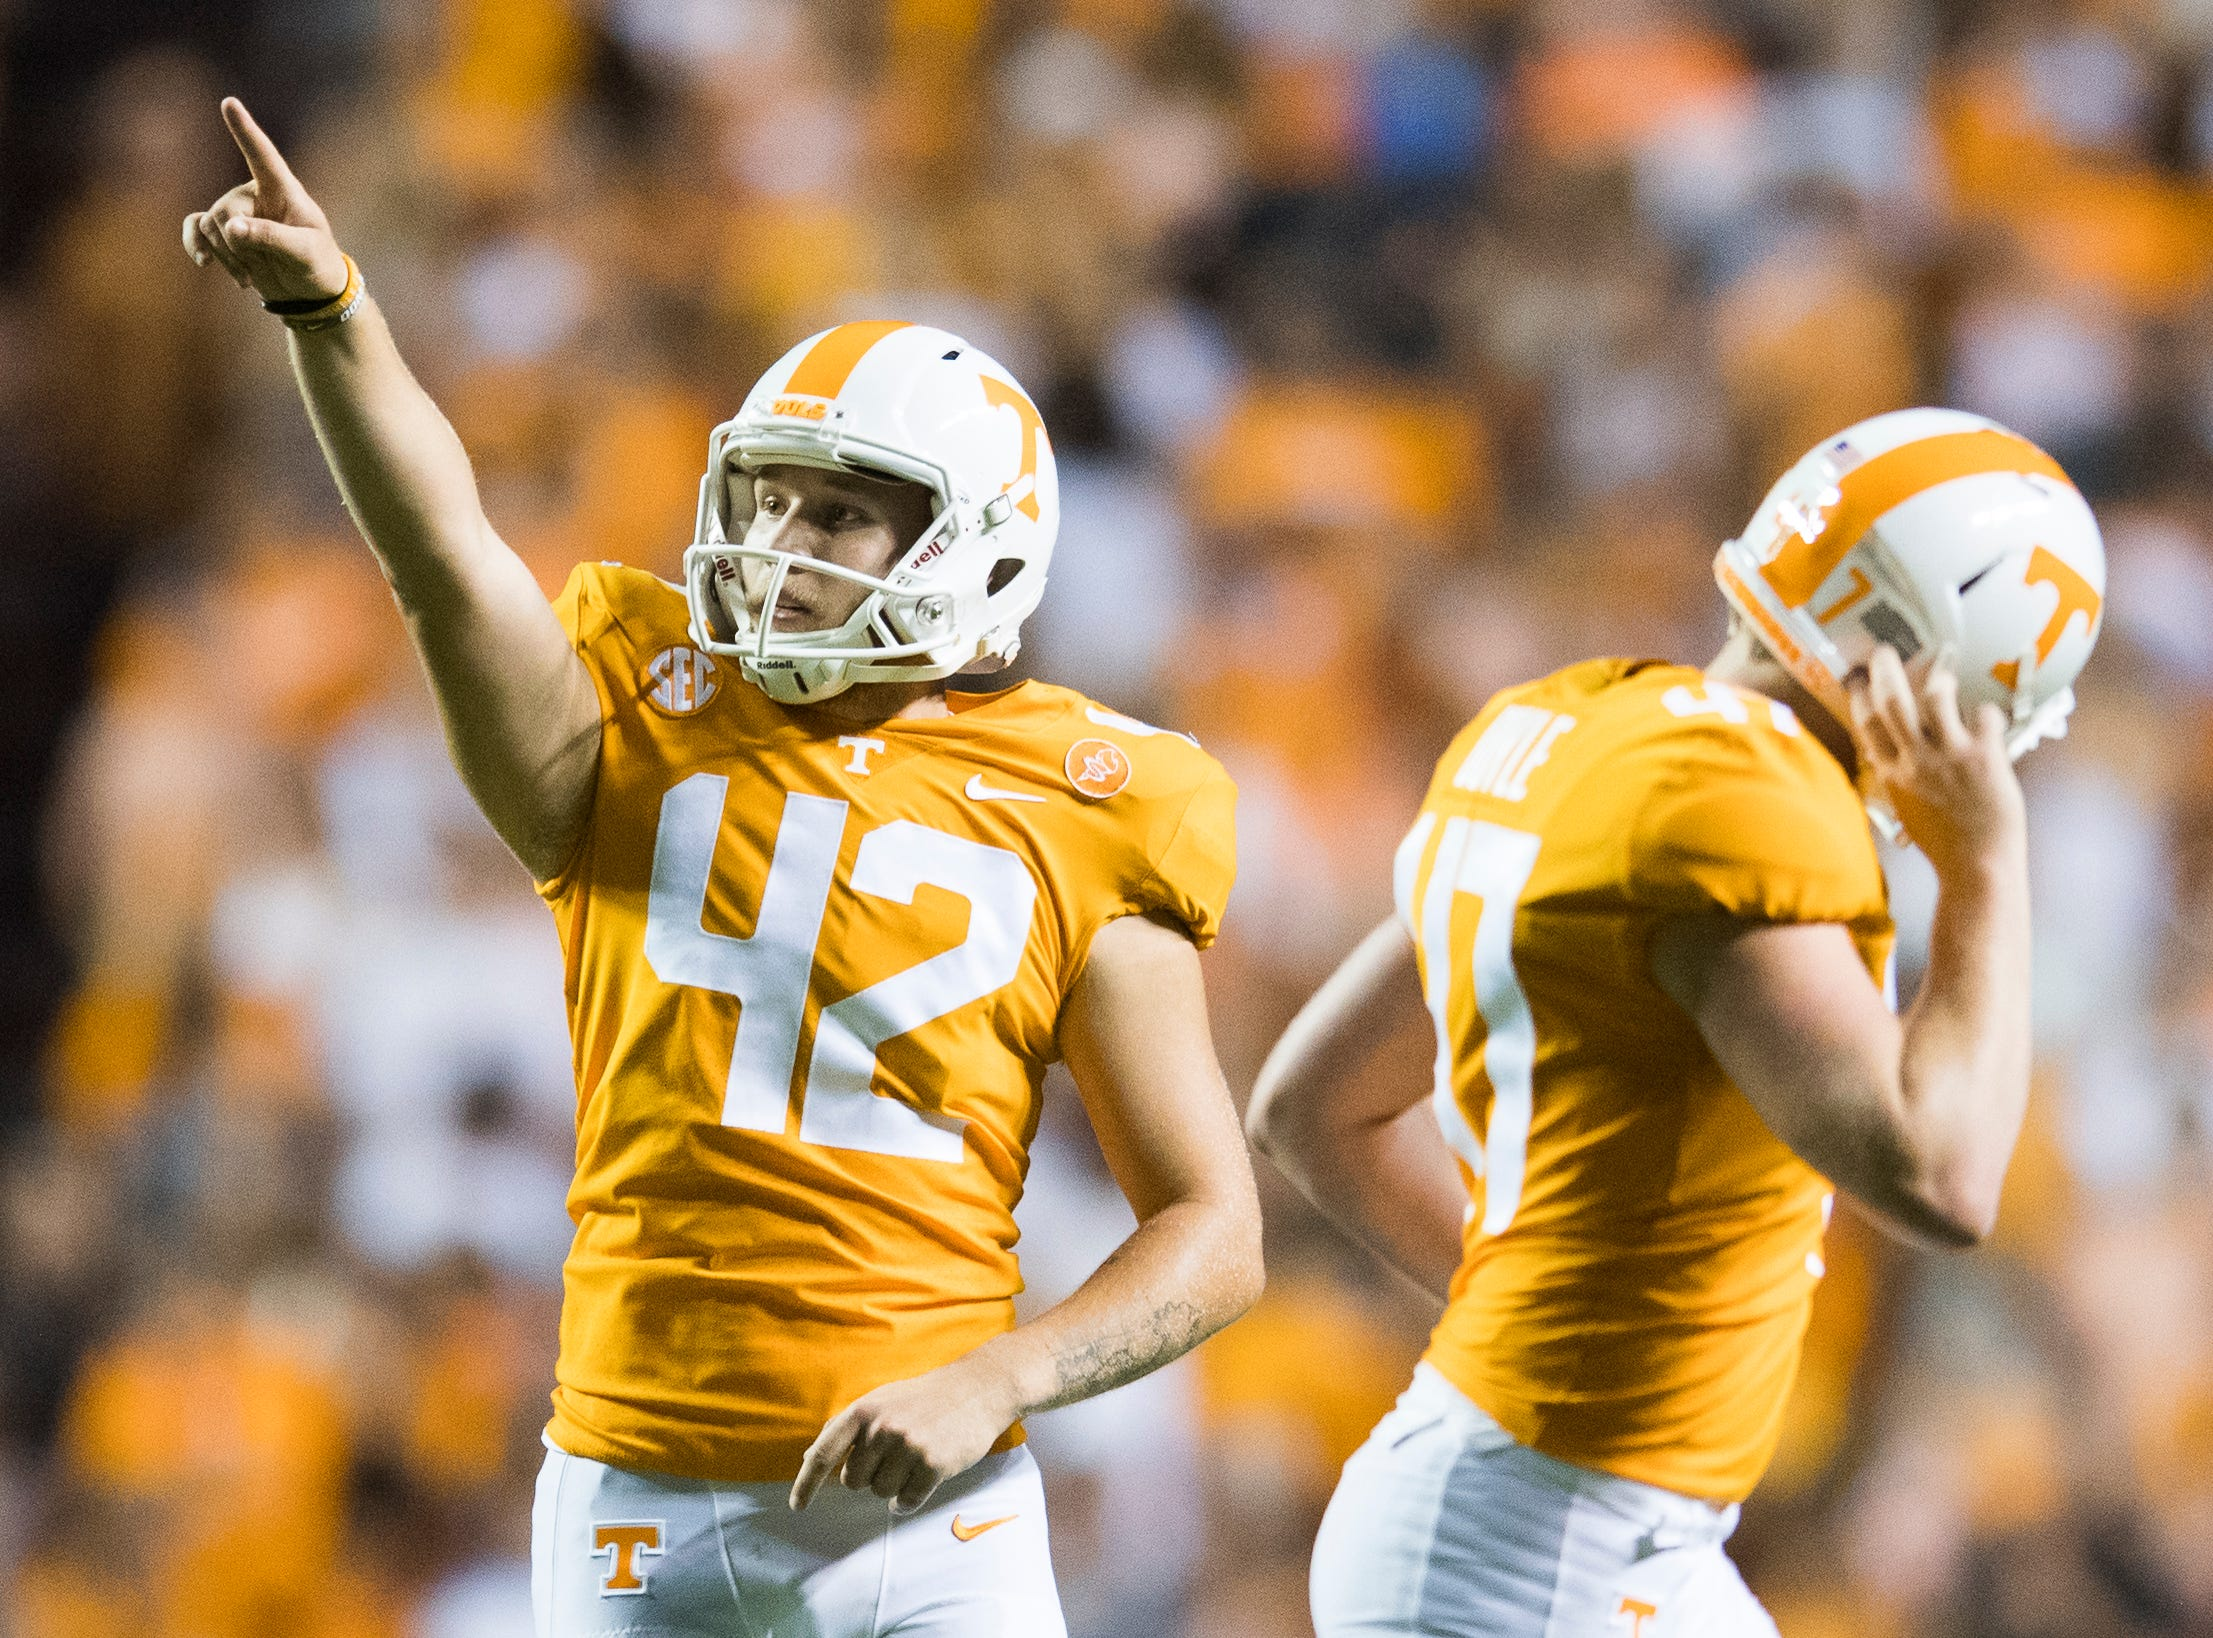 Tennessee placekicker Brent Cimaglia (42) celebrates a point during a game between Tennessee and Florida at Neyland Stadium in Knoxville, Tennessee on Saturday, September 22, 2018.